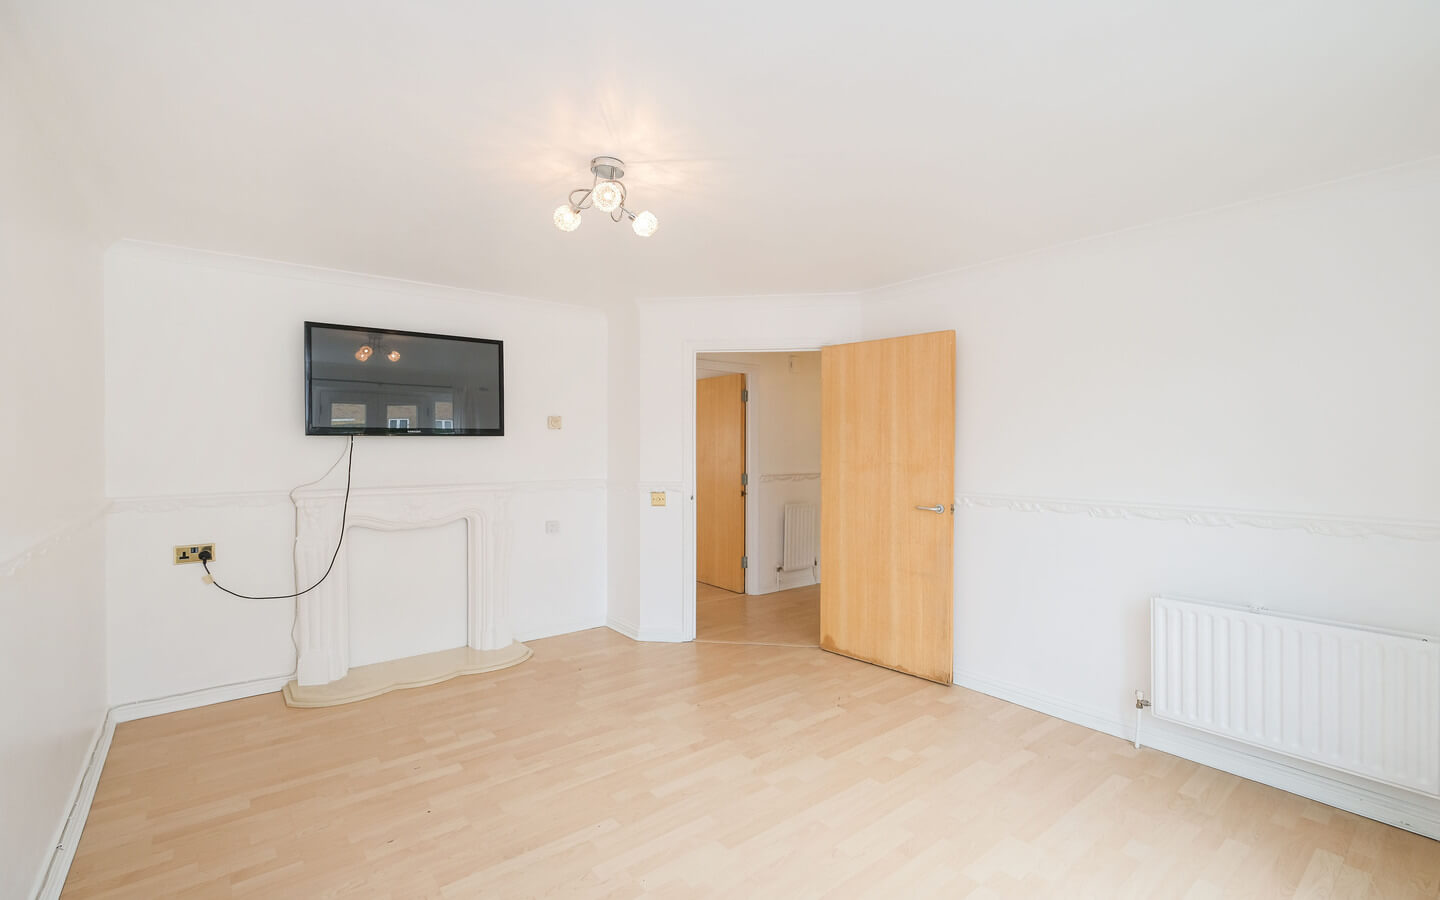 1 Bedroom Flat For Rent Hackney London E9 5HG